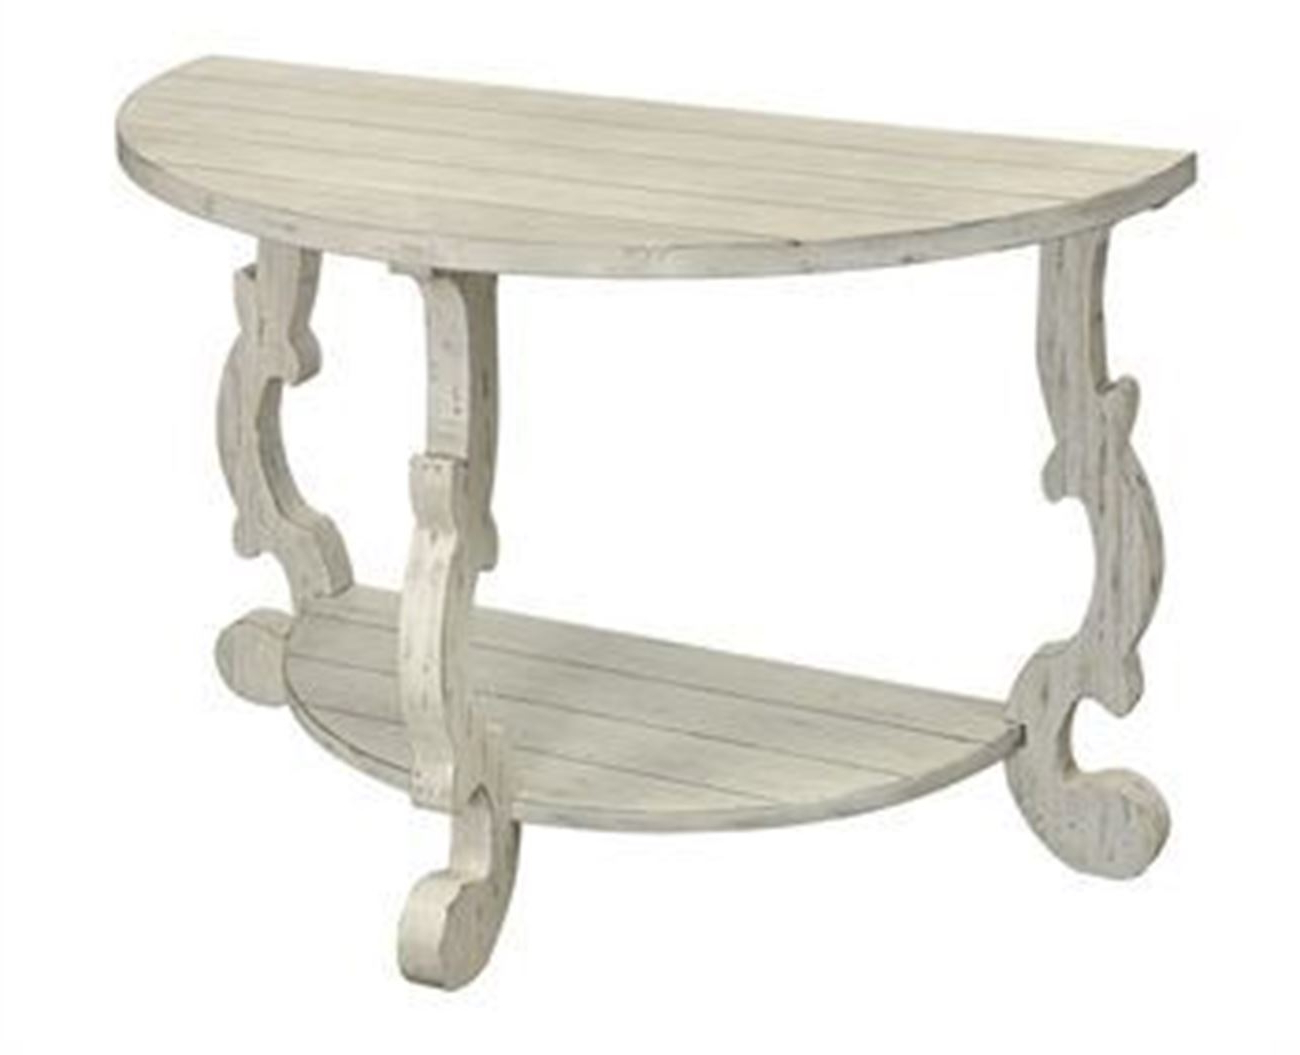 Demilune Console Table Within Clairemont Reviews Crate And Barrel Inside Clairemont Demilune Console Tables (View 9 of 20)